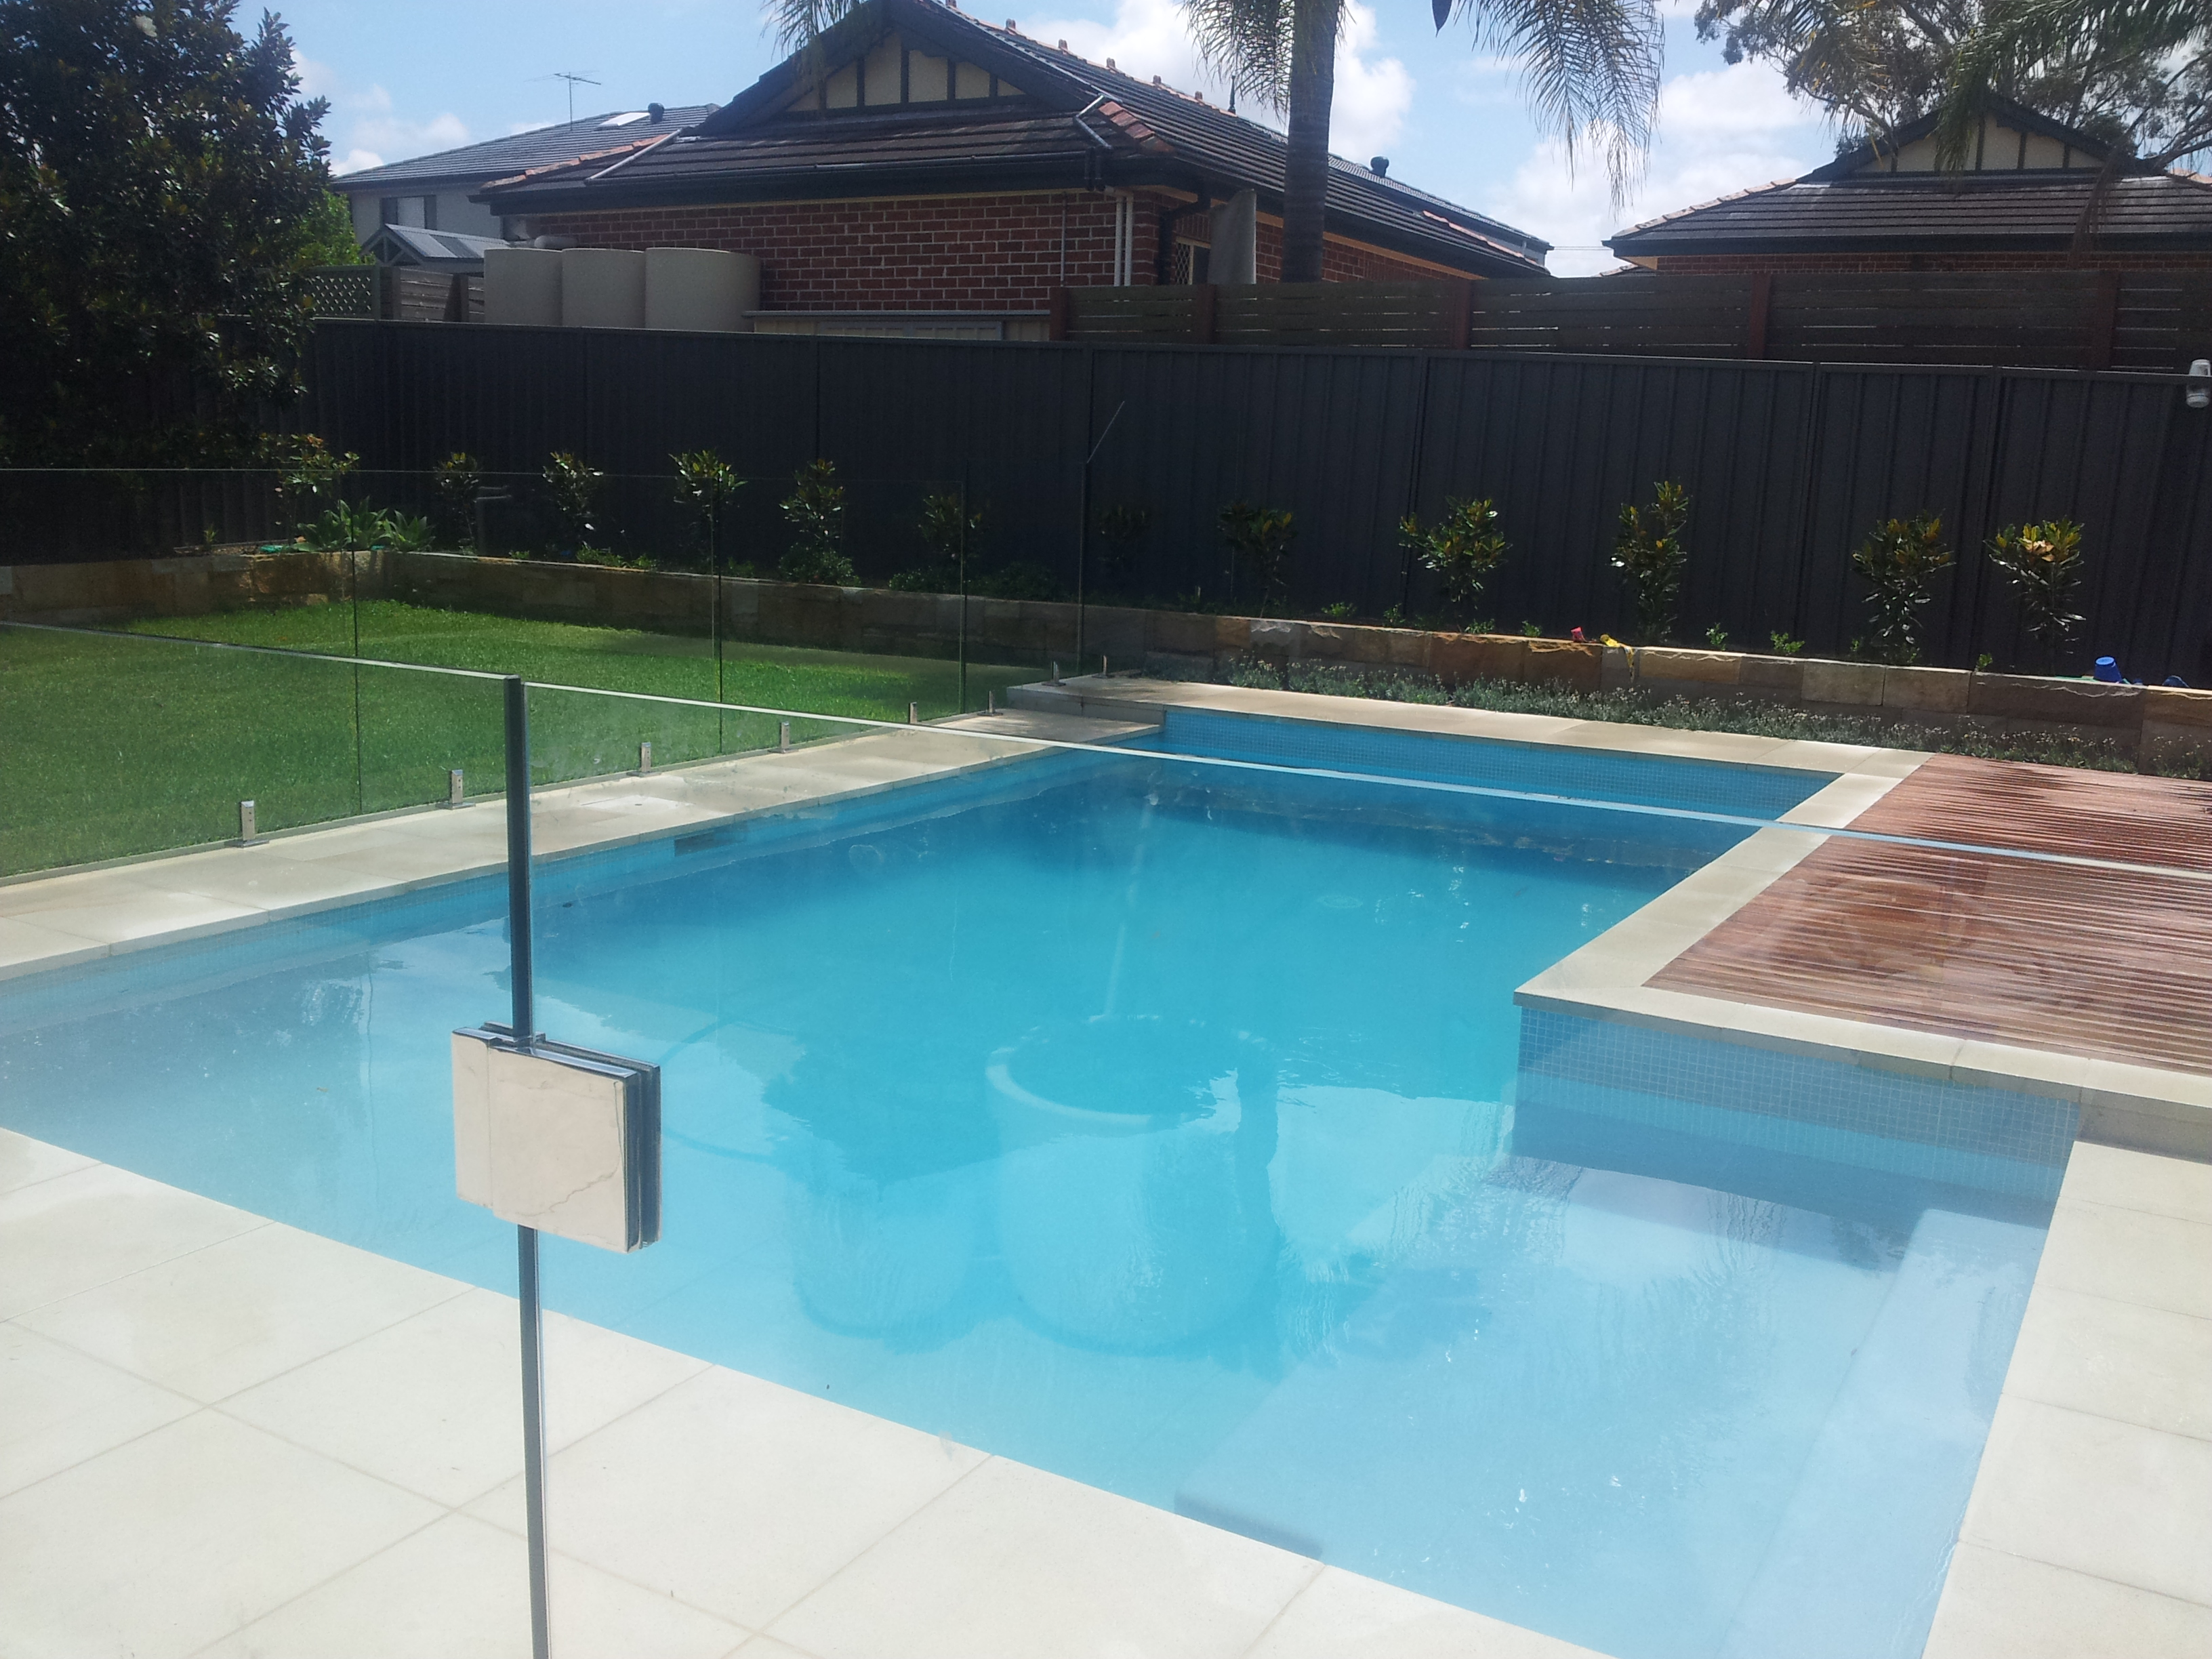 Trayd pools sydney pool and outdoor design for Pool design sydney